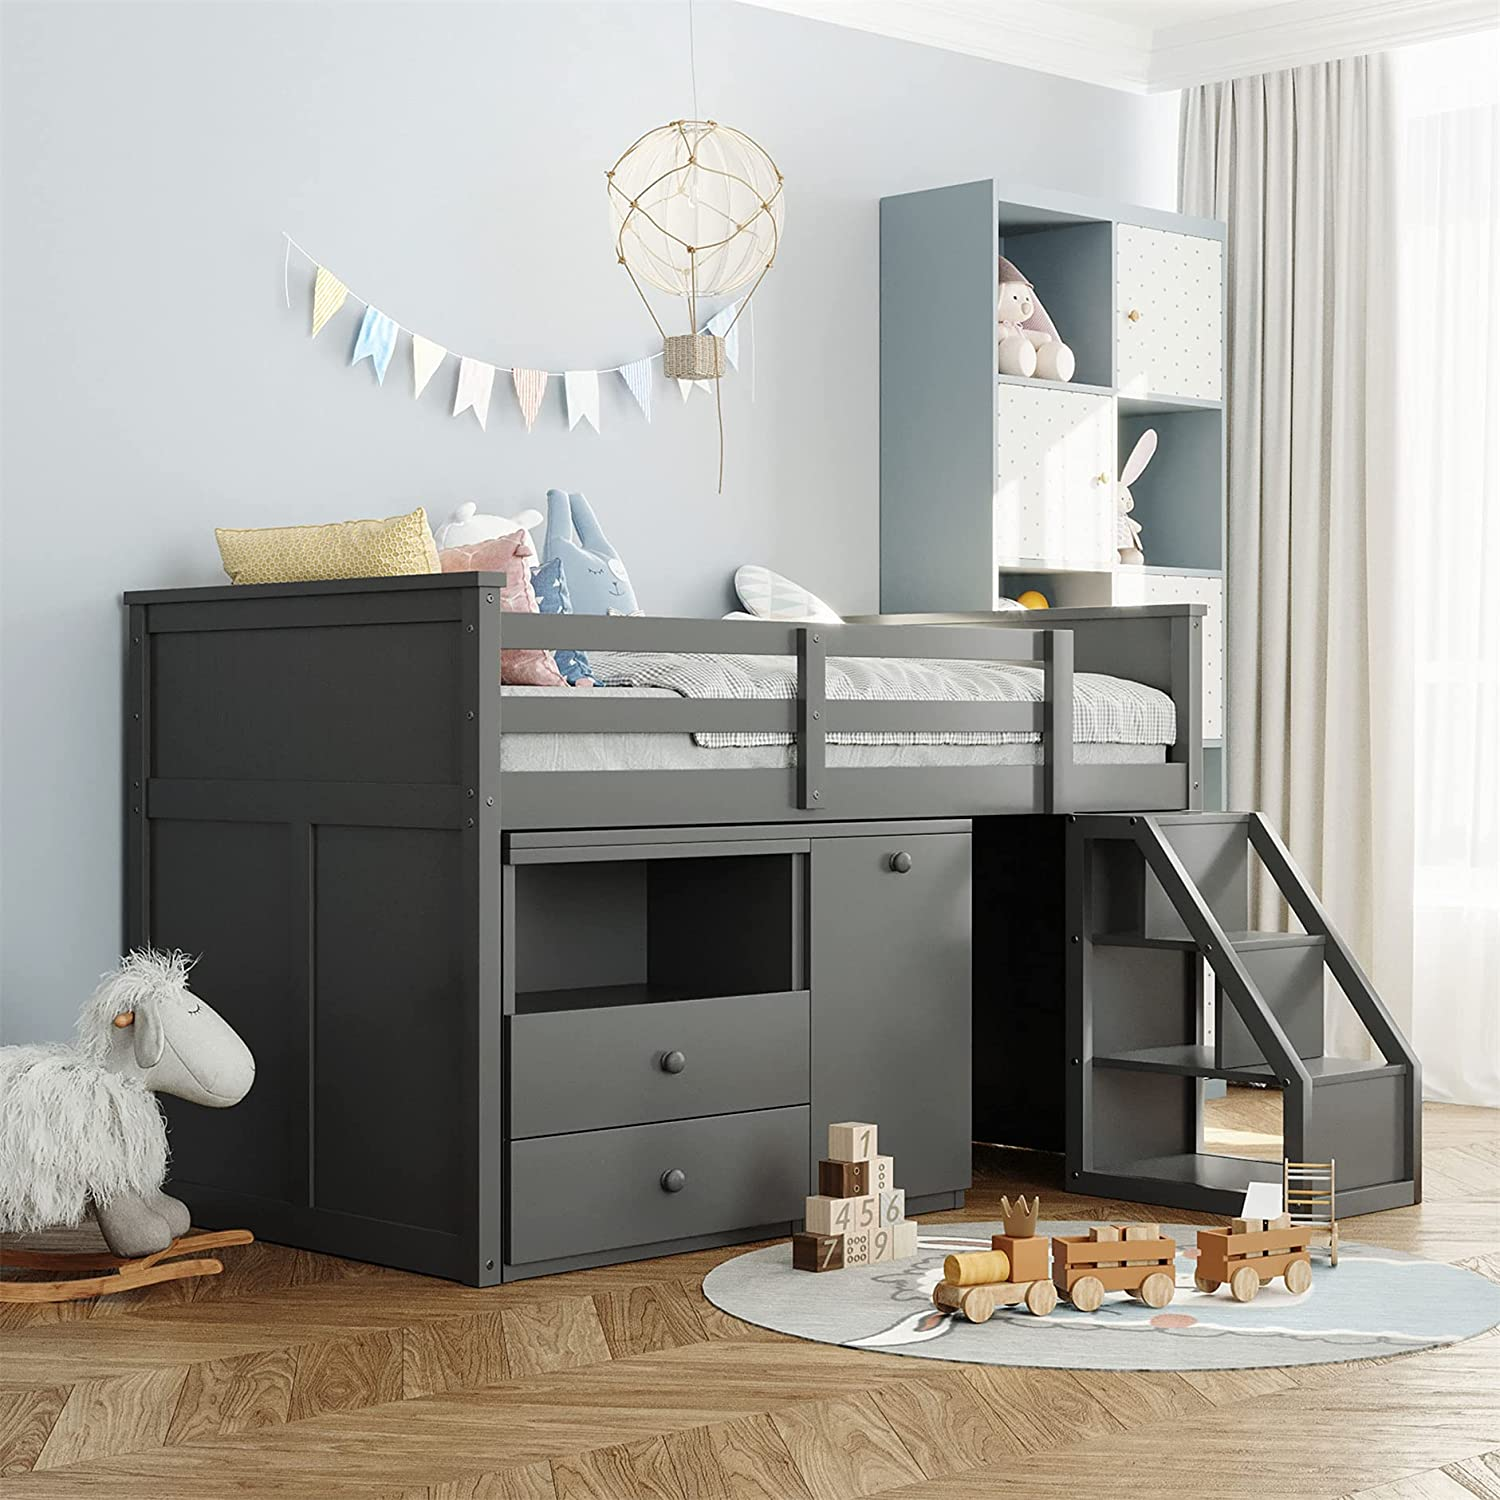 Low Loft Bed with Desk and Size Max 88% OFF Storage Twin Step Challenge the lowest price